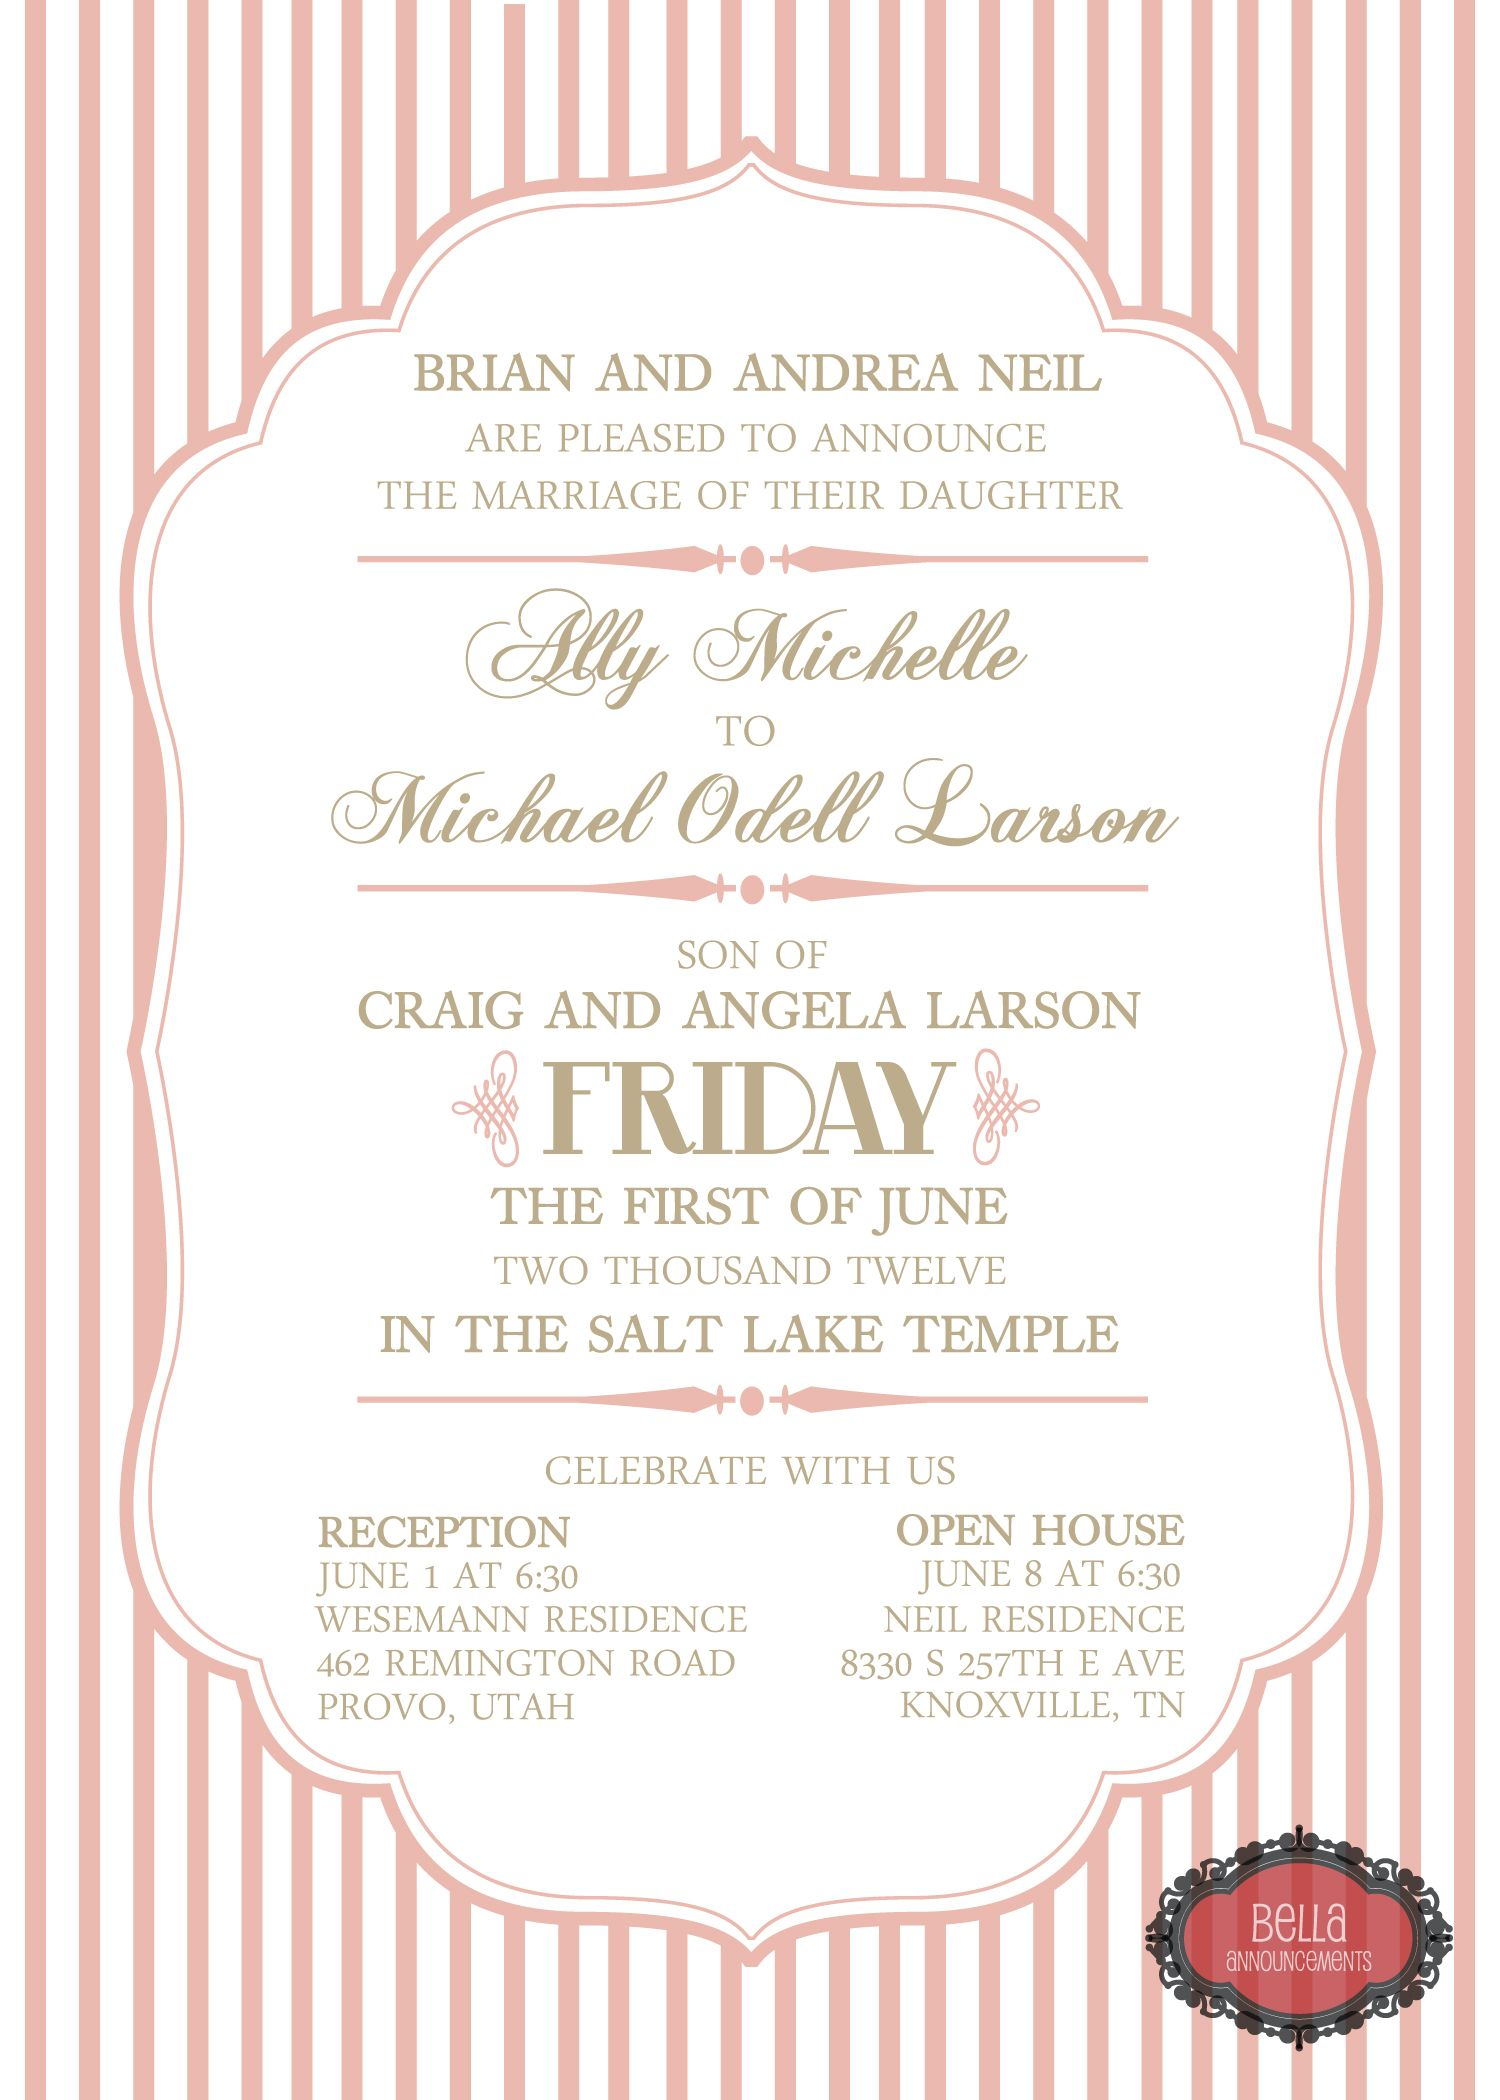 Just change the color to teal and the background to something else pink wedding invitation pink and champagne wedding invitation vintage wedding invitation stripe wedding invitation monicamarmolfo Images